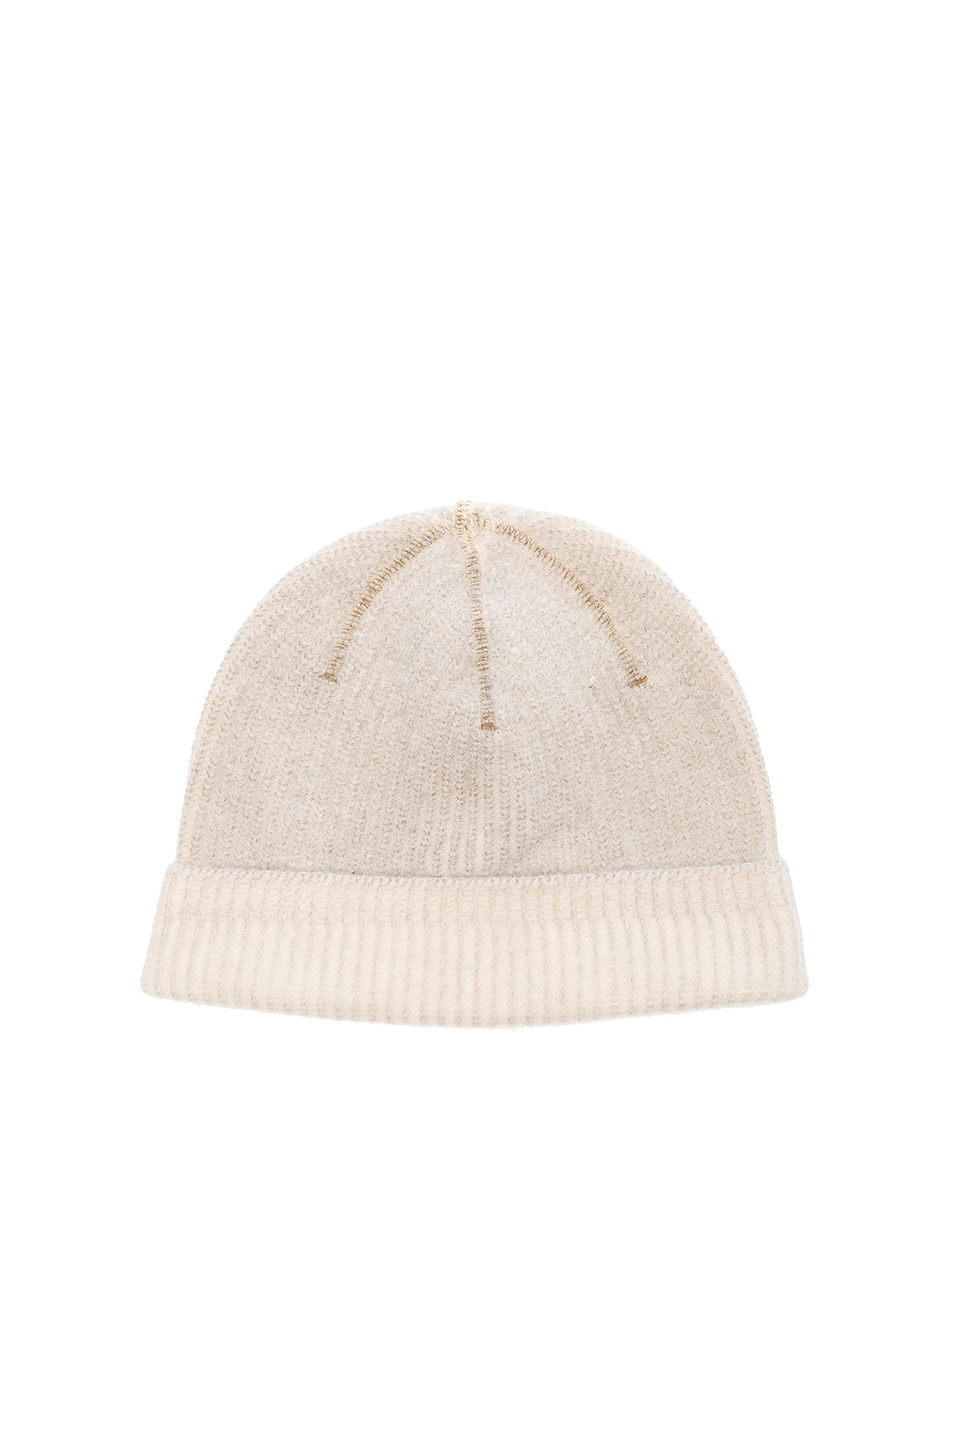 c0cb89b58 Our Legacy Knitted Hat in Nicotine | FWRD